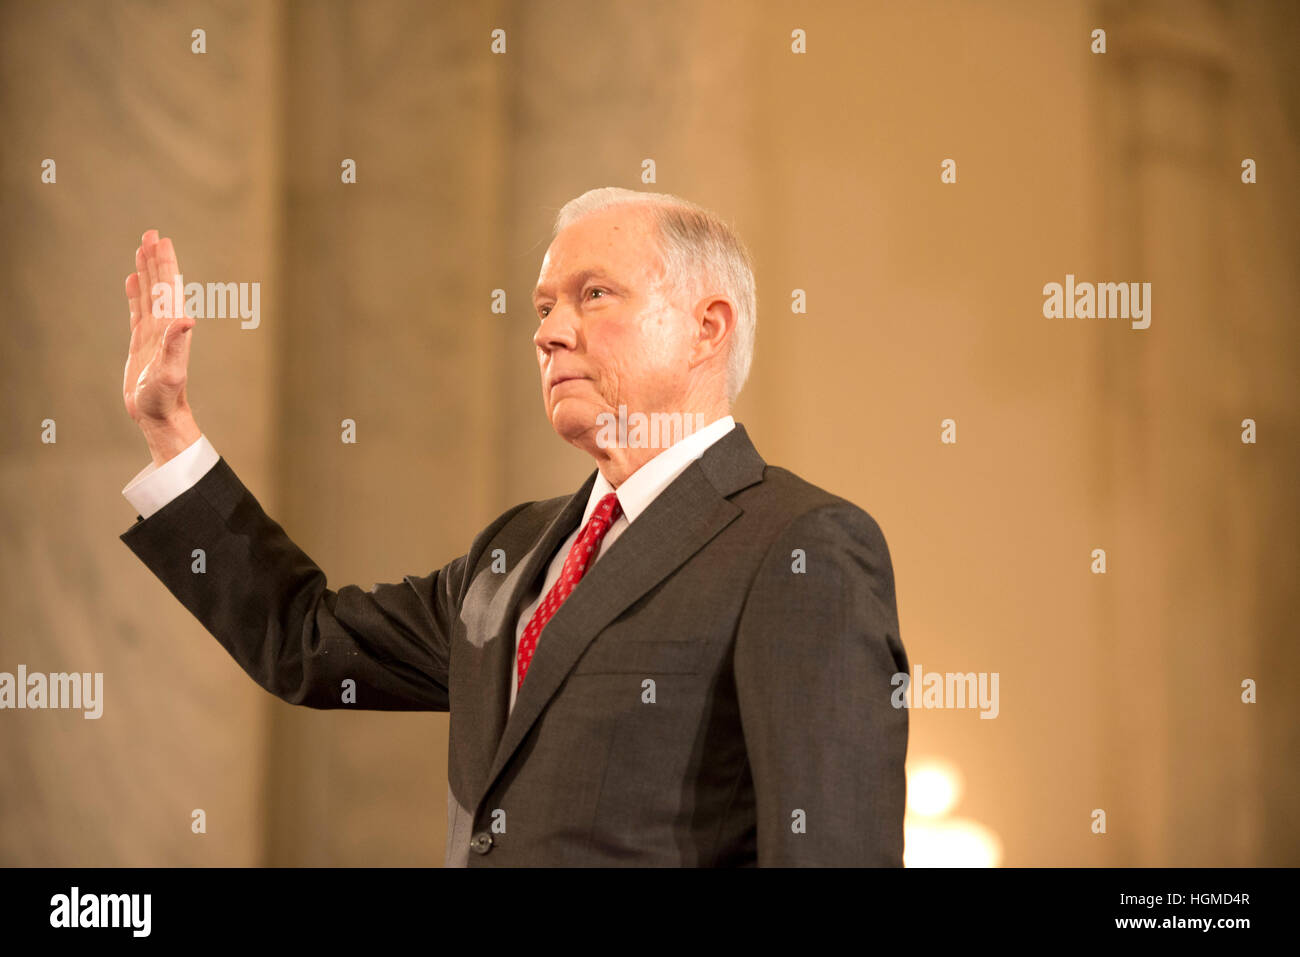 Washington, USA. 10th Jan, 2017.   Senator Jeff Sessions, R-AL, testifies on Capitol Hill at his confirmation hearing - Stock Image